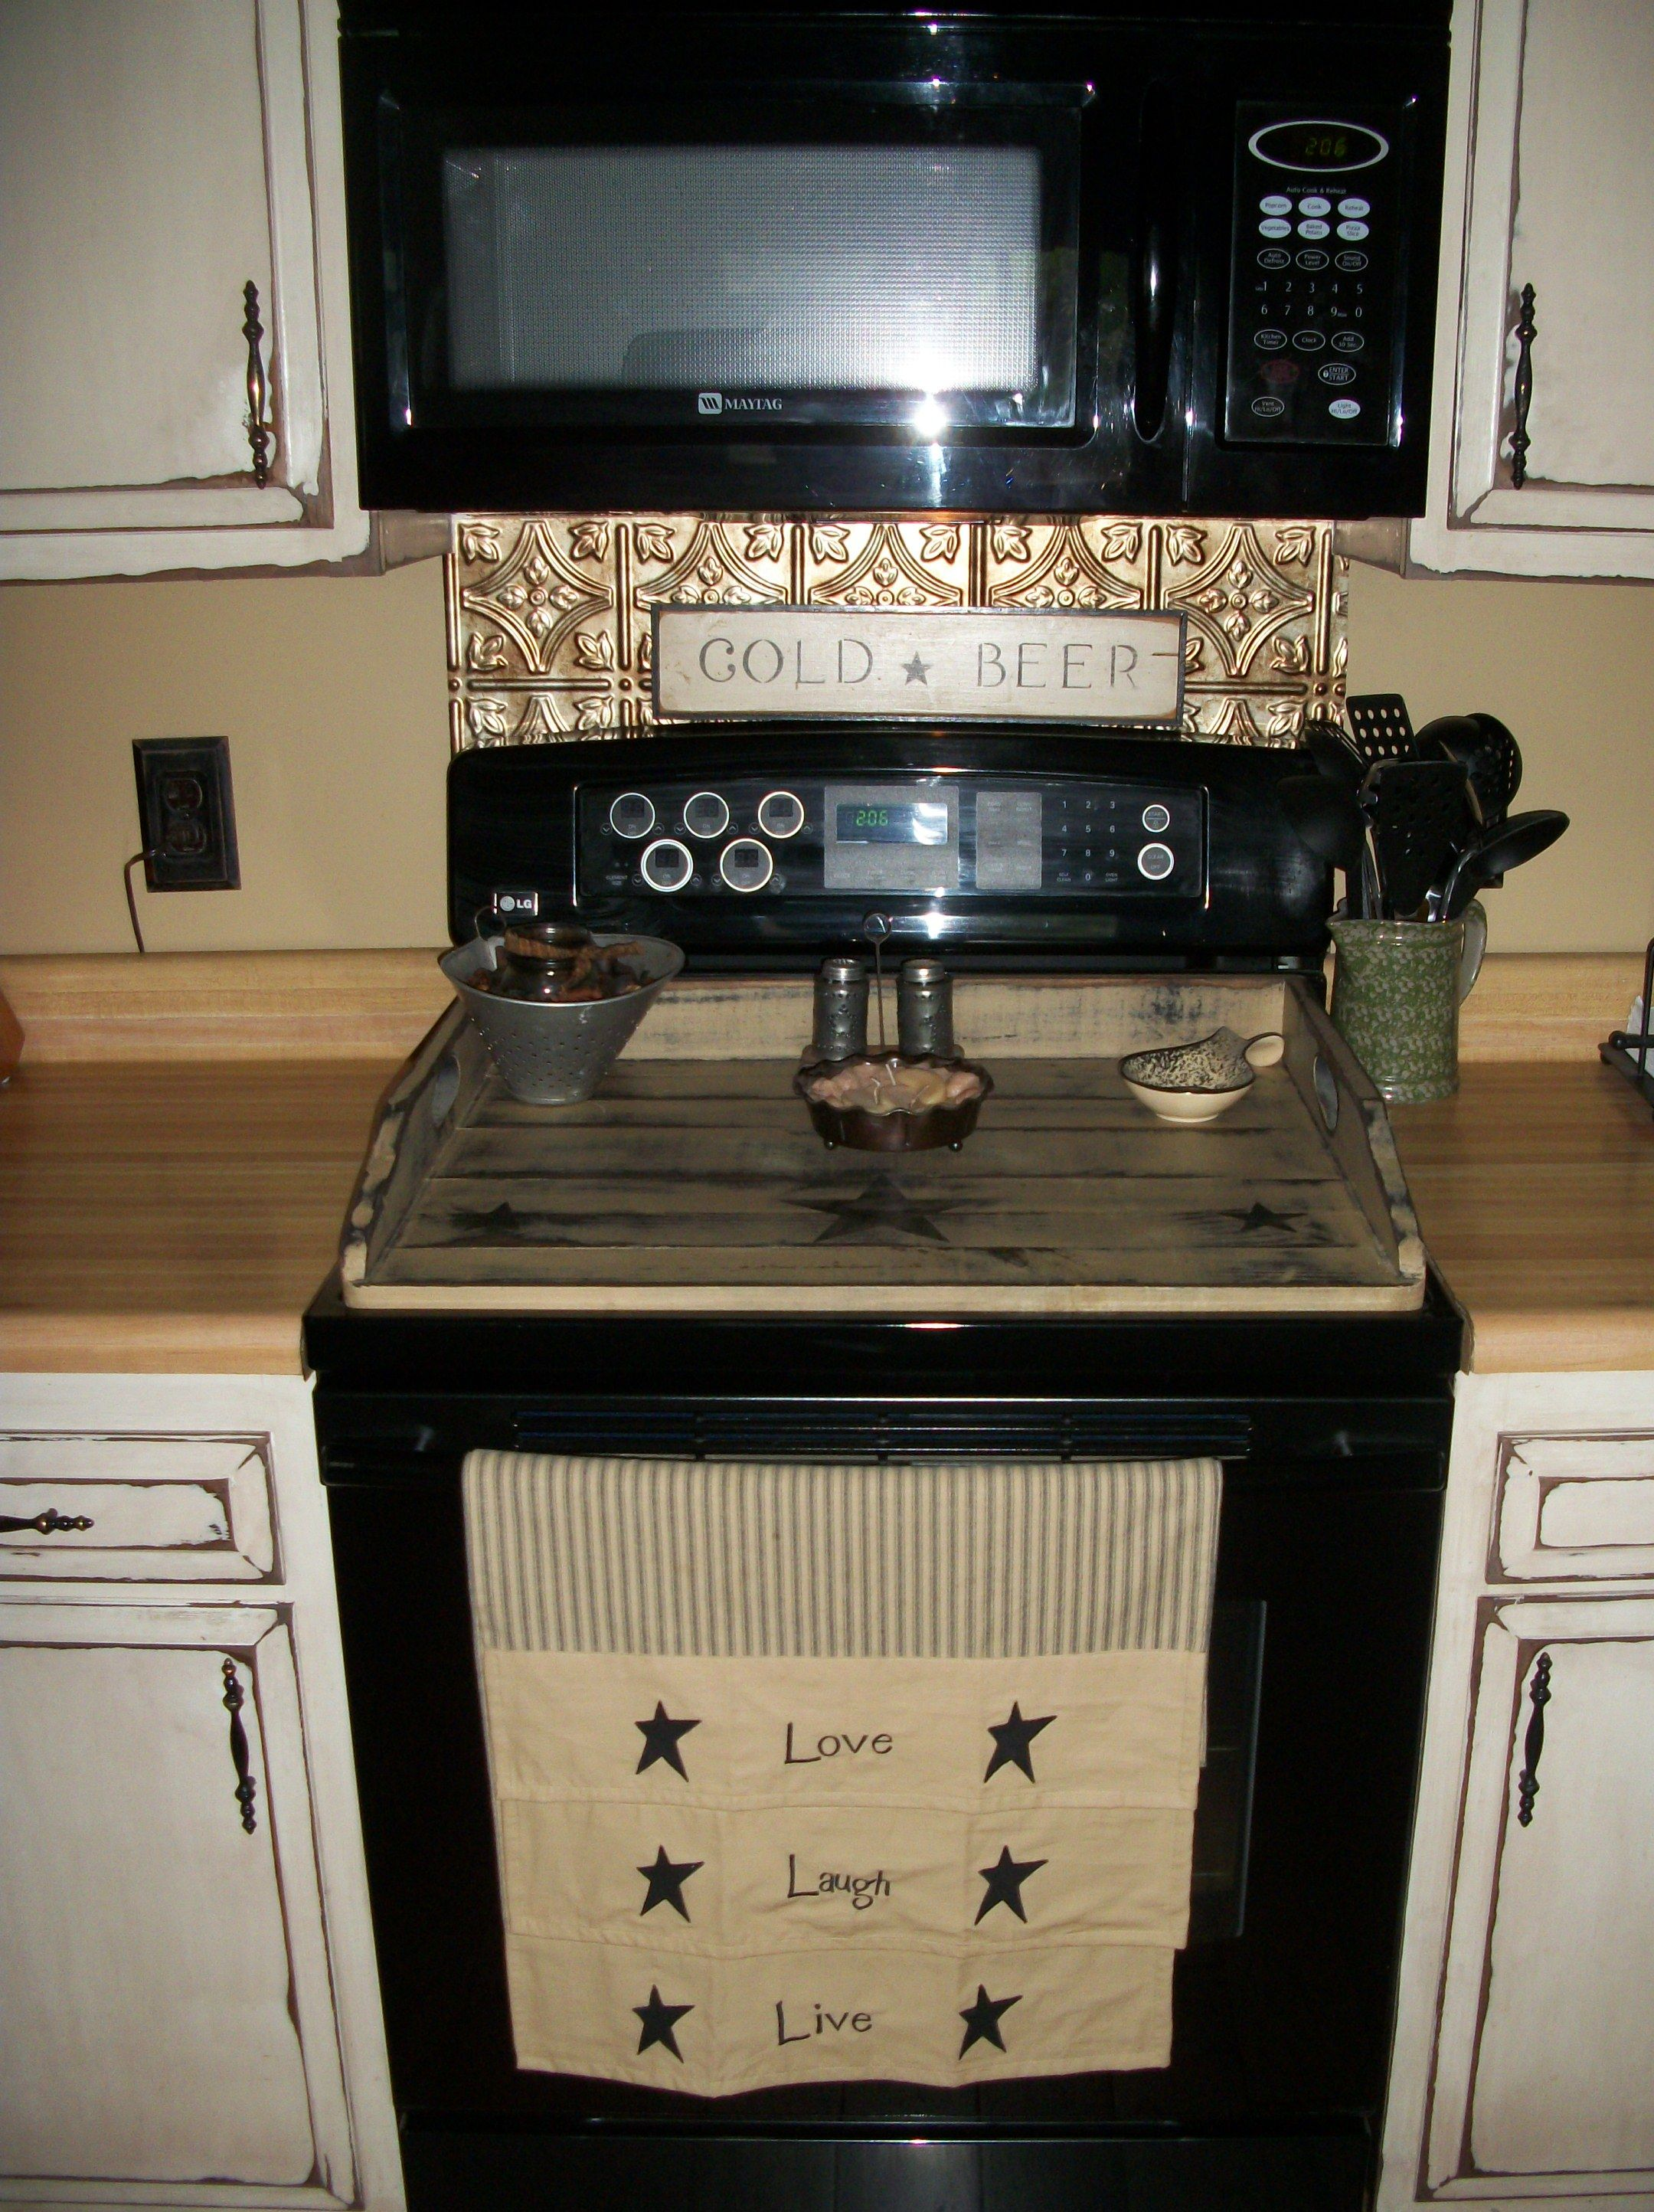 Love the stove board and the towel, well that sign on the stove is ...